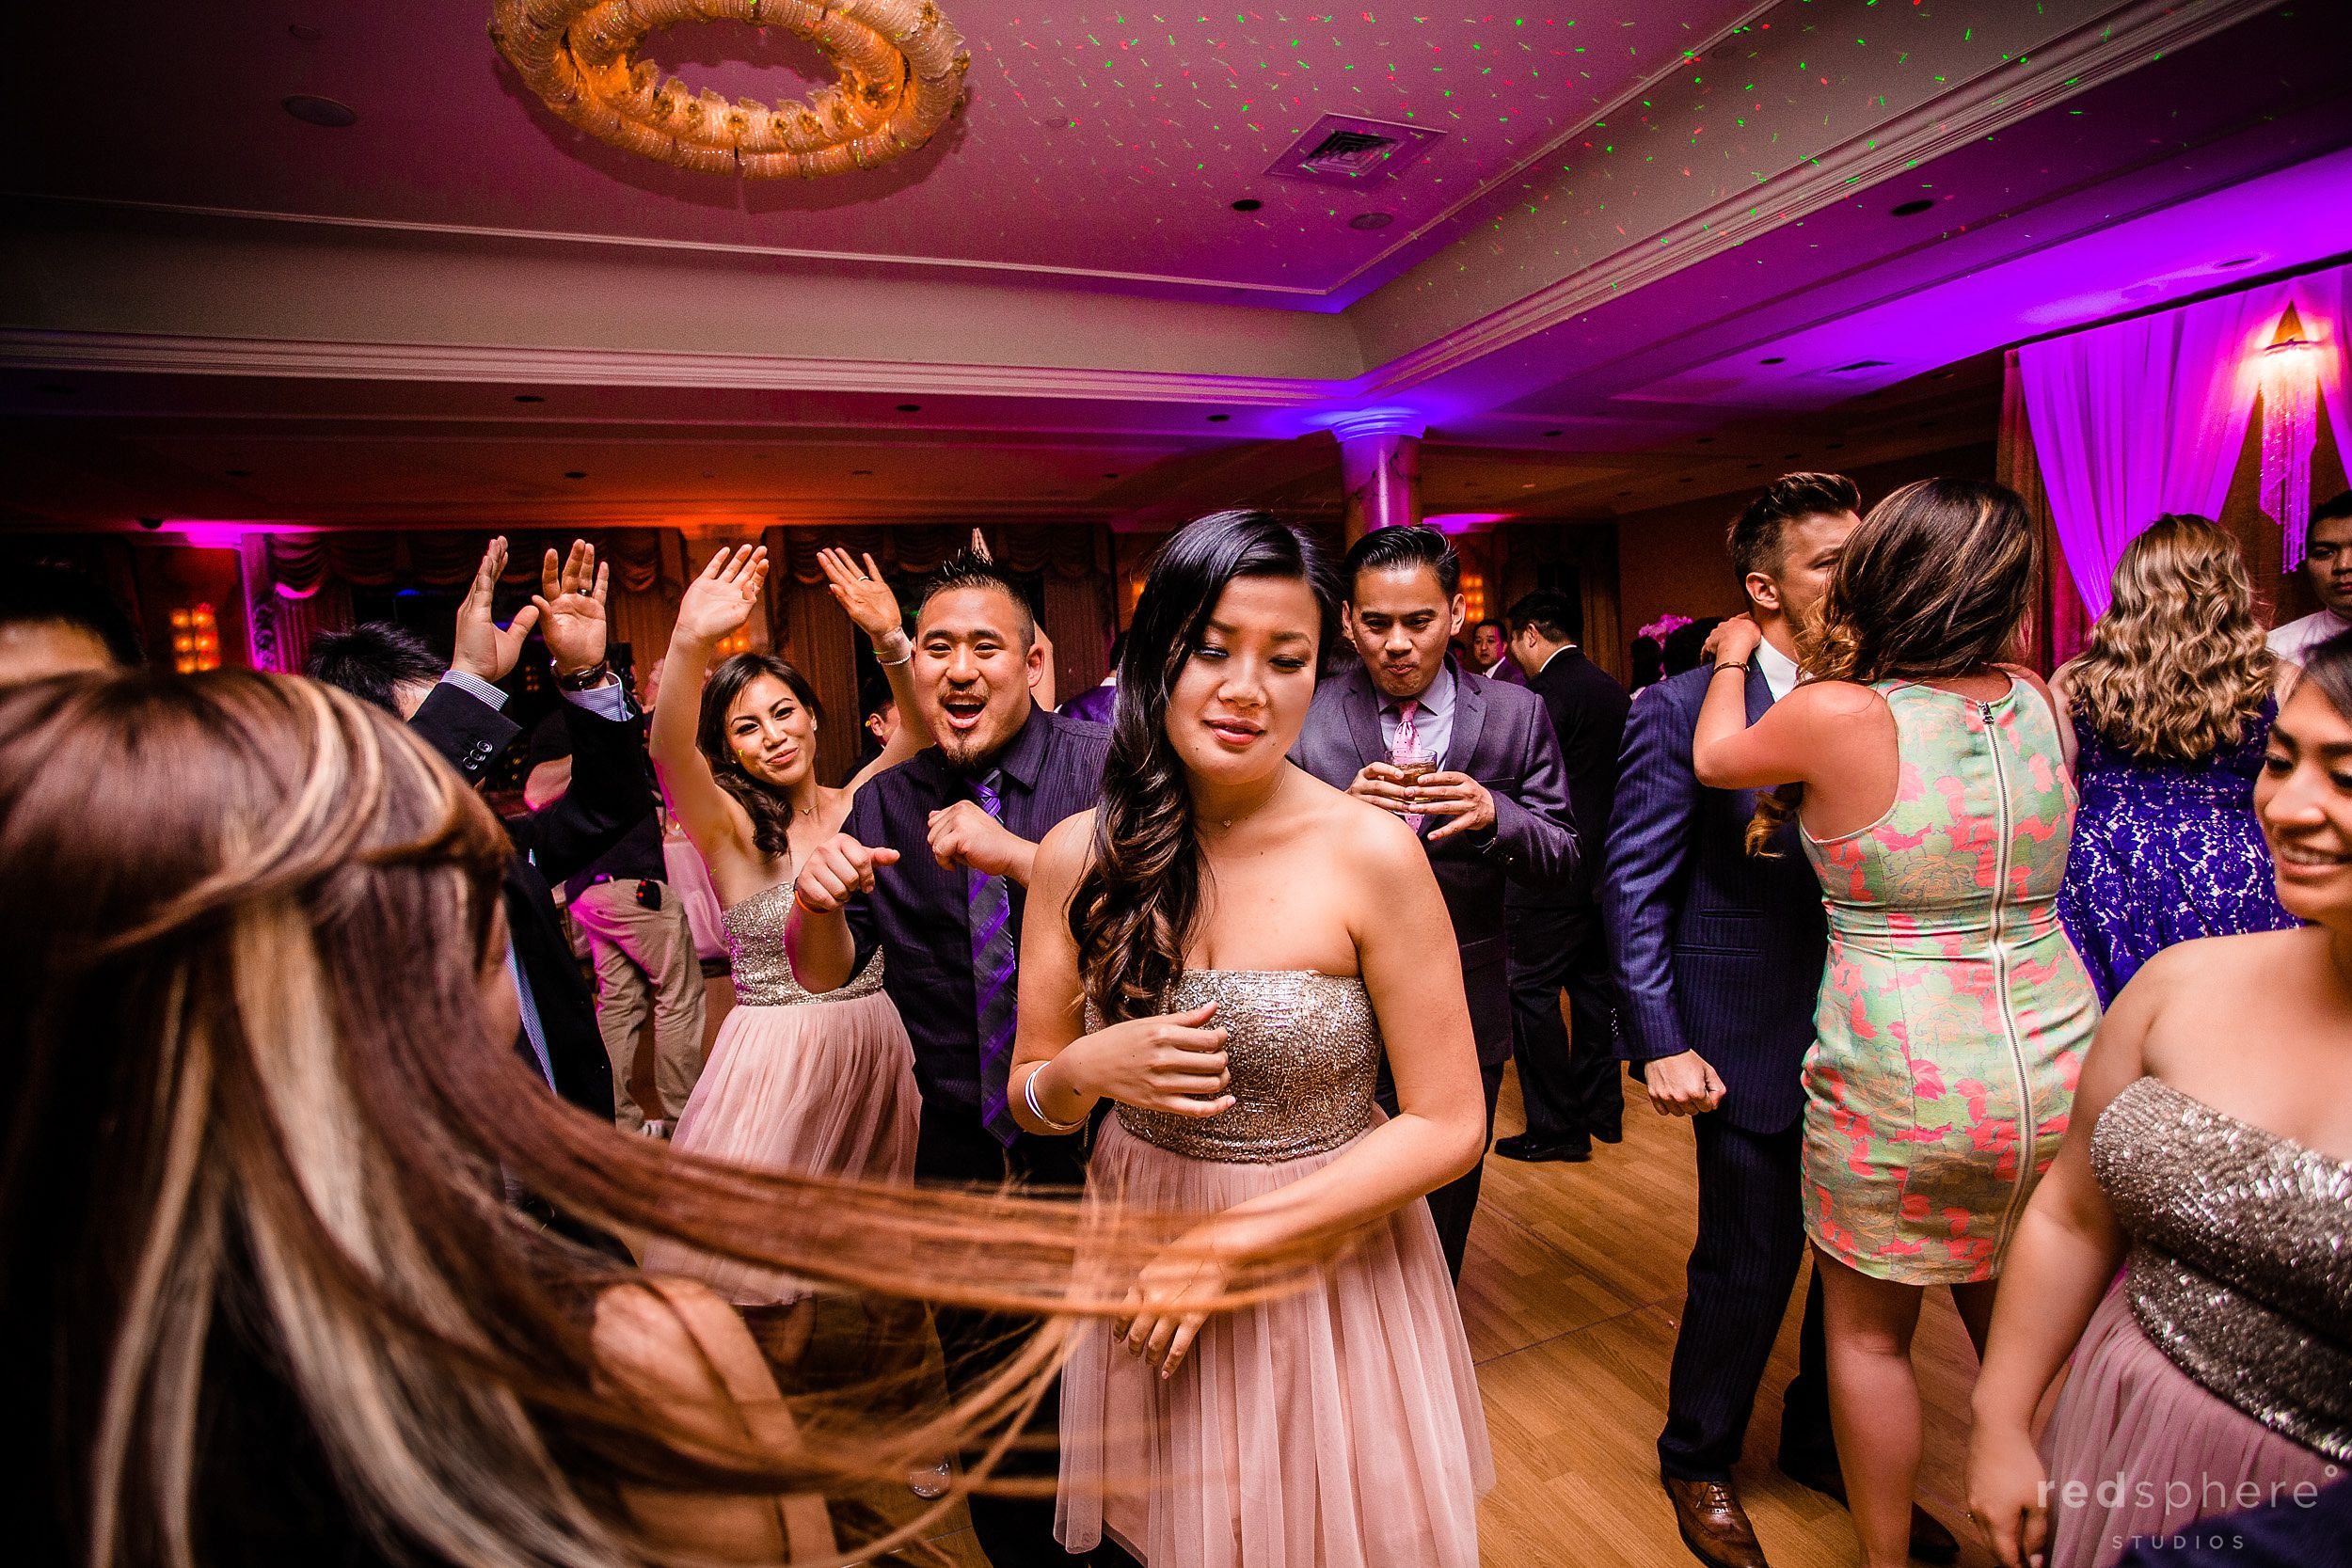 Guests Dance Passionately at Fairmont Hotel Wedding